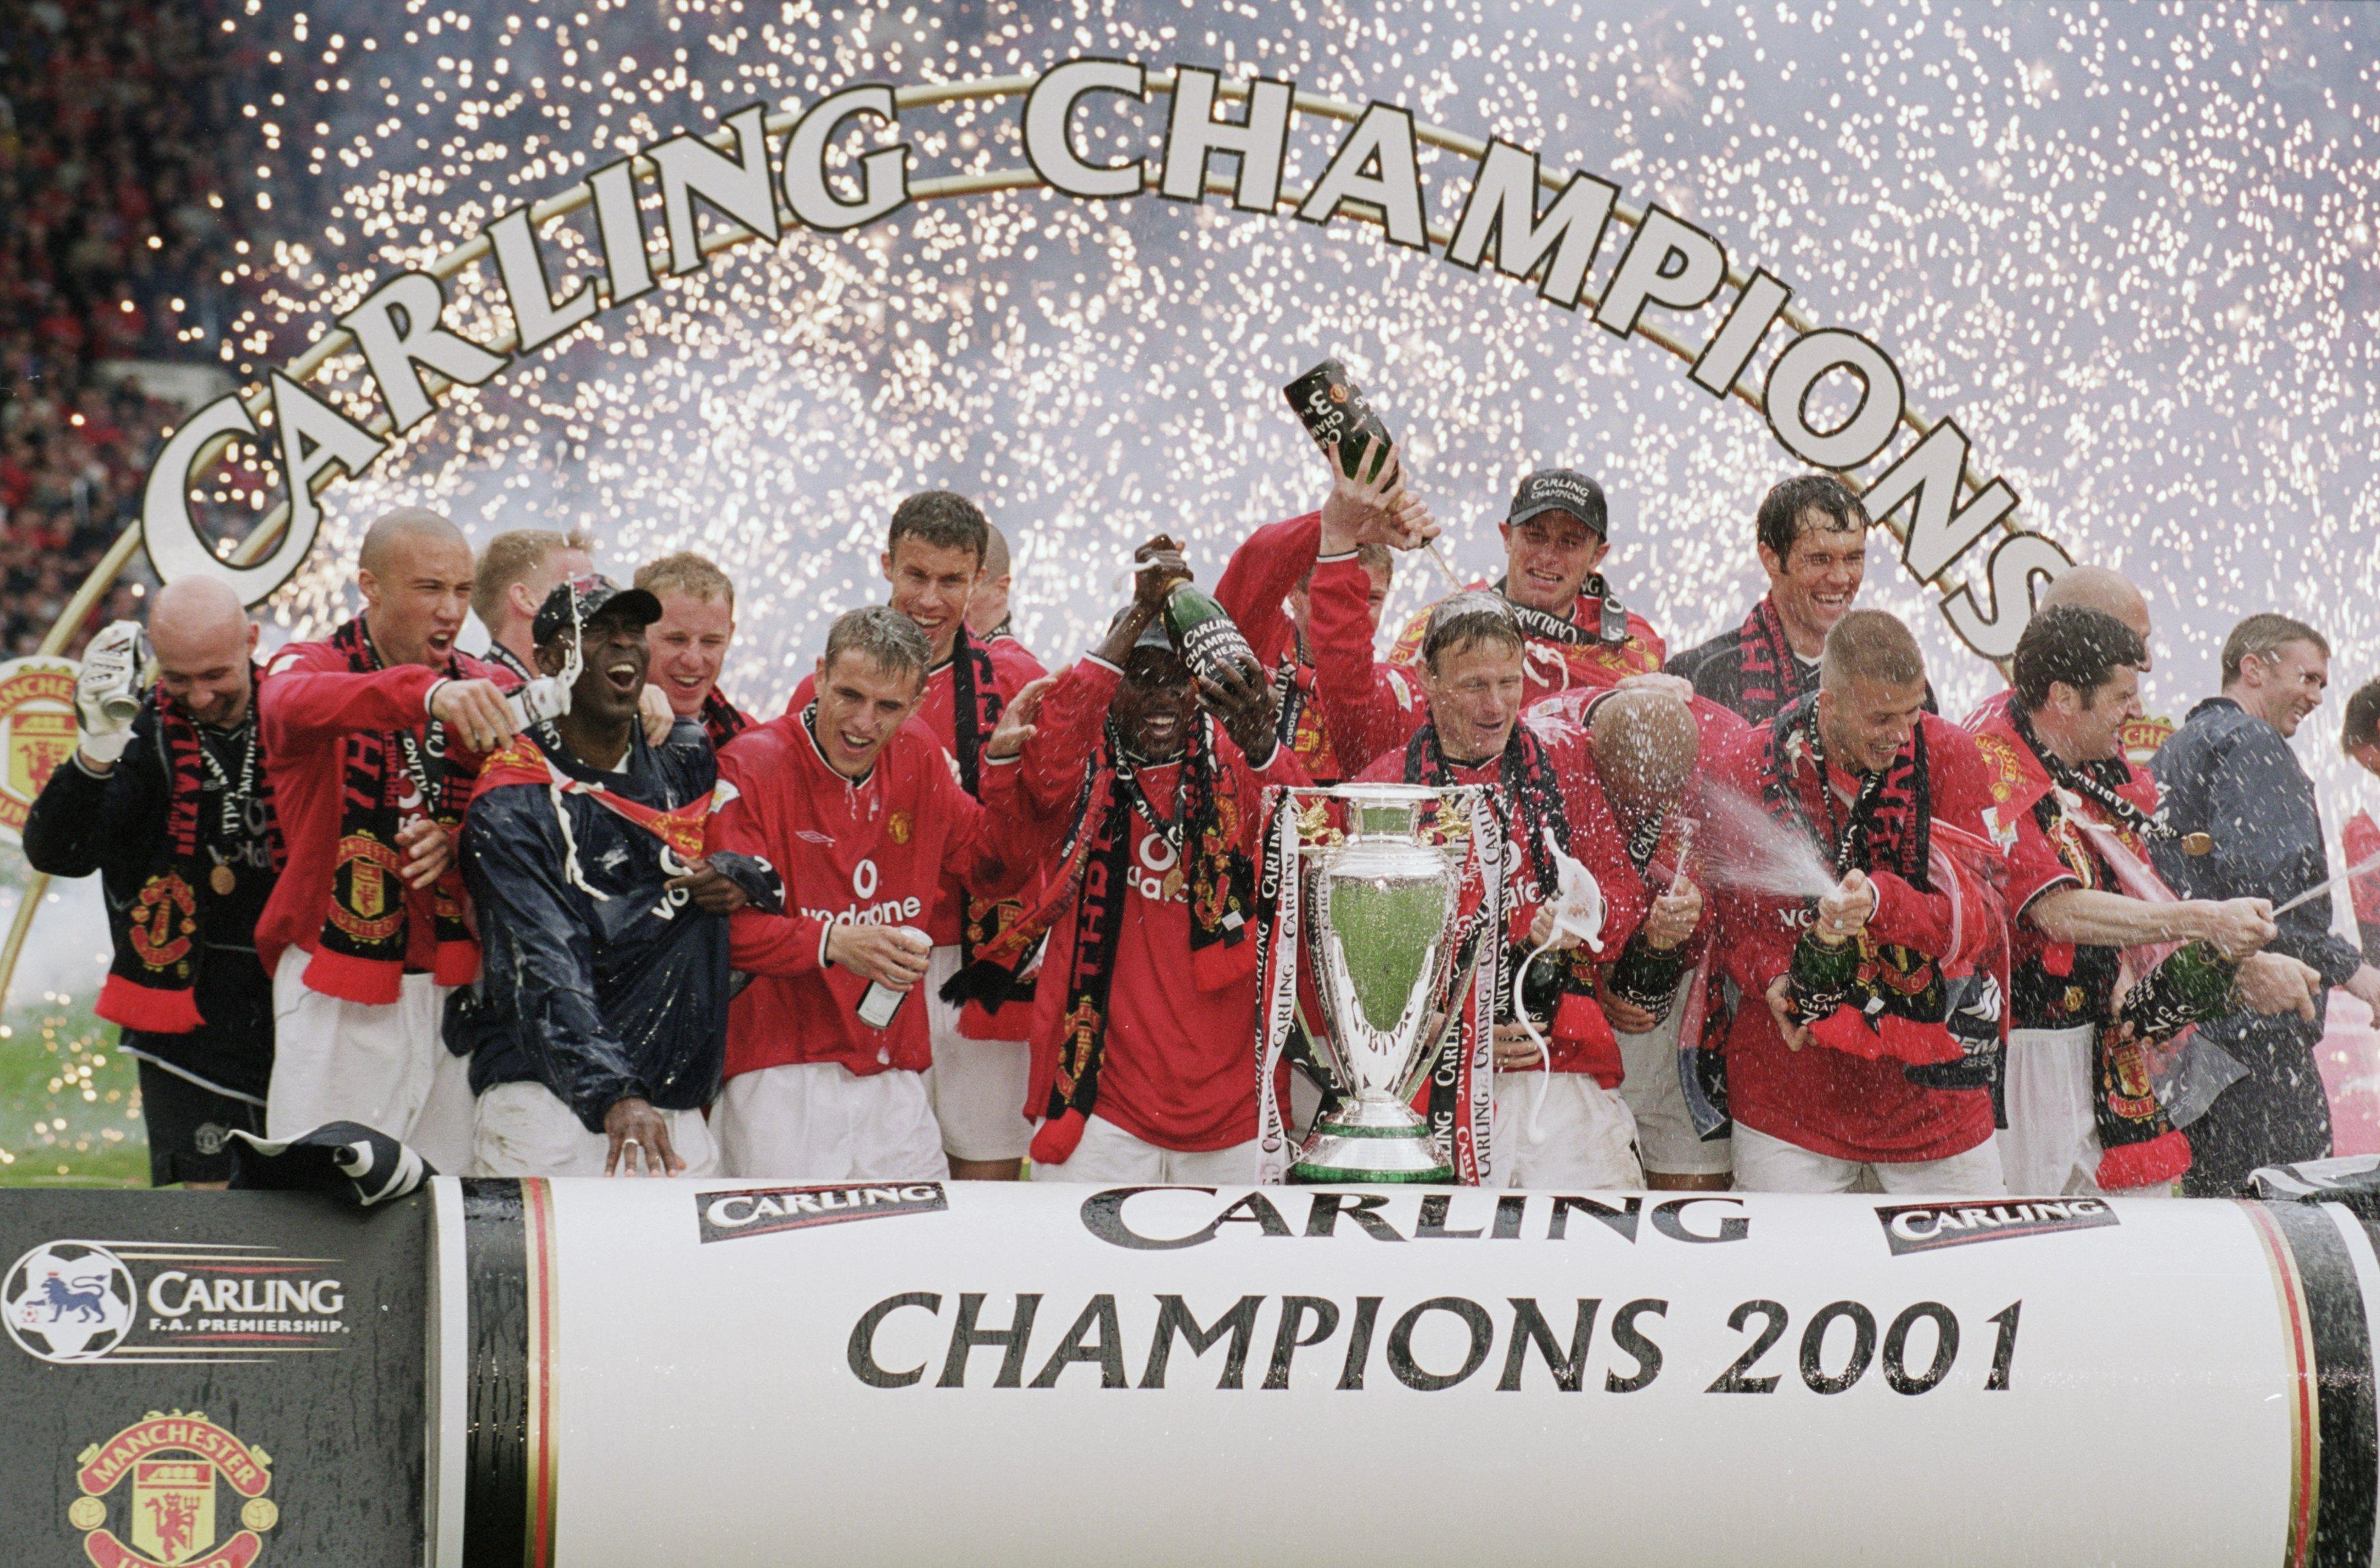 Carling announced as beer partner of the league for Premier league table 99 2000